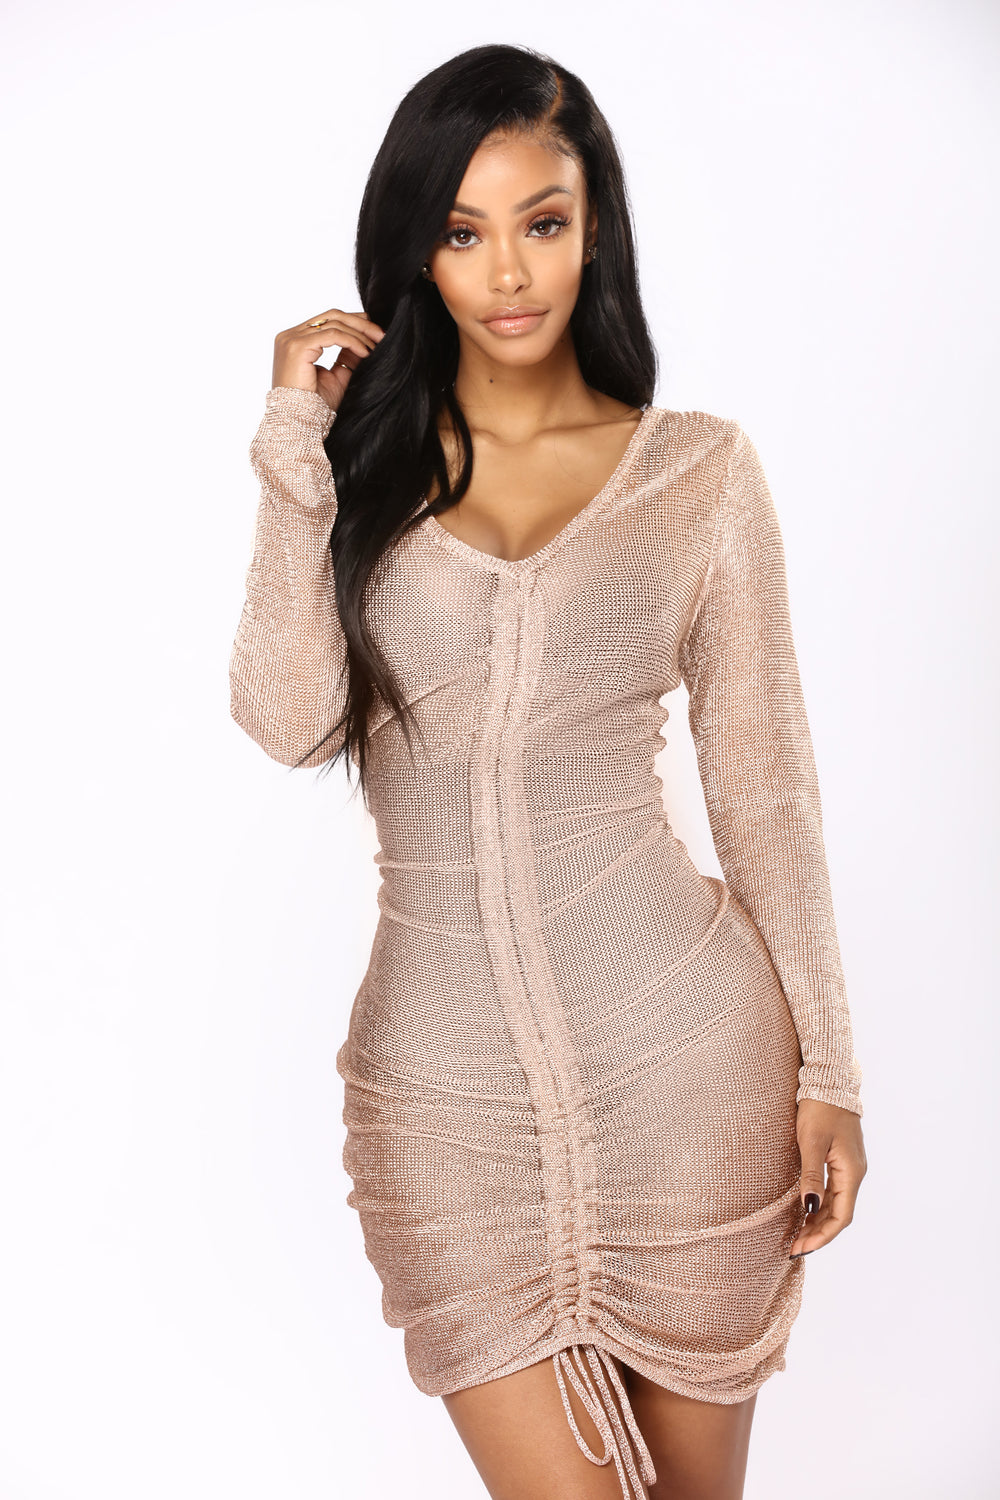 Zhou Metallic Dress - Rose Gold